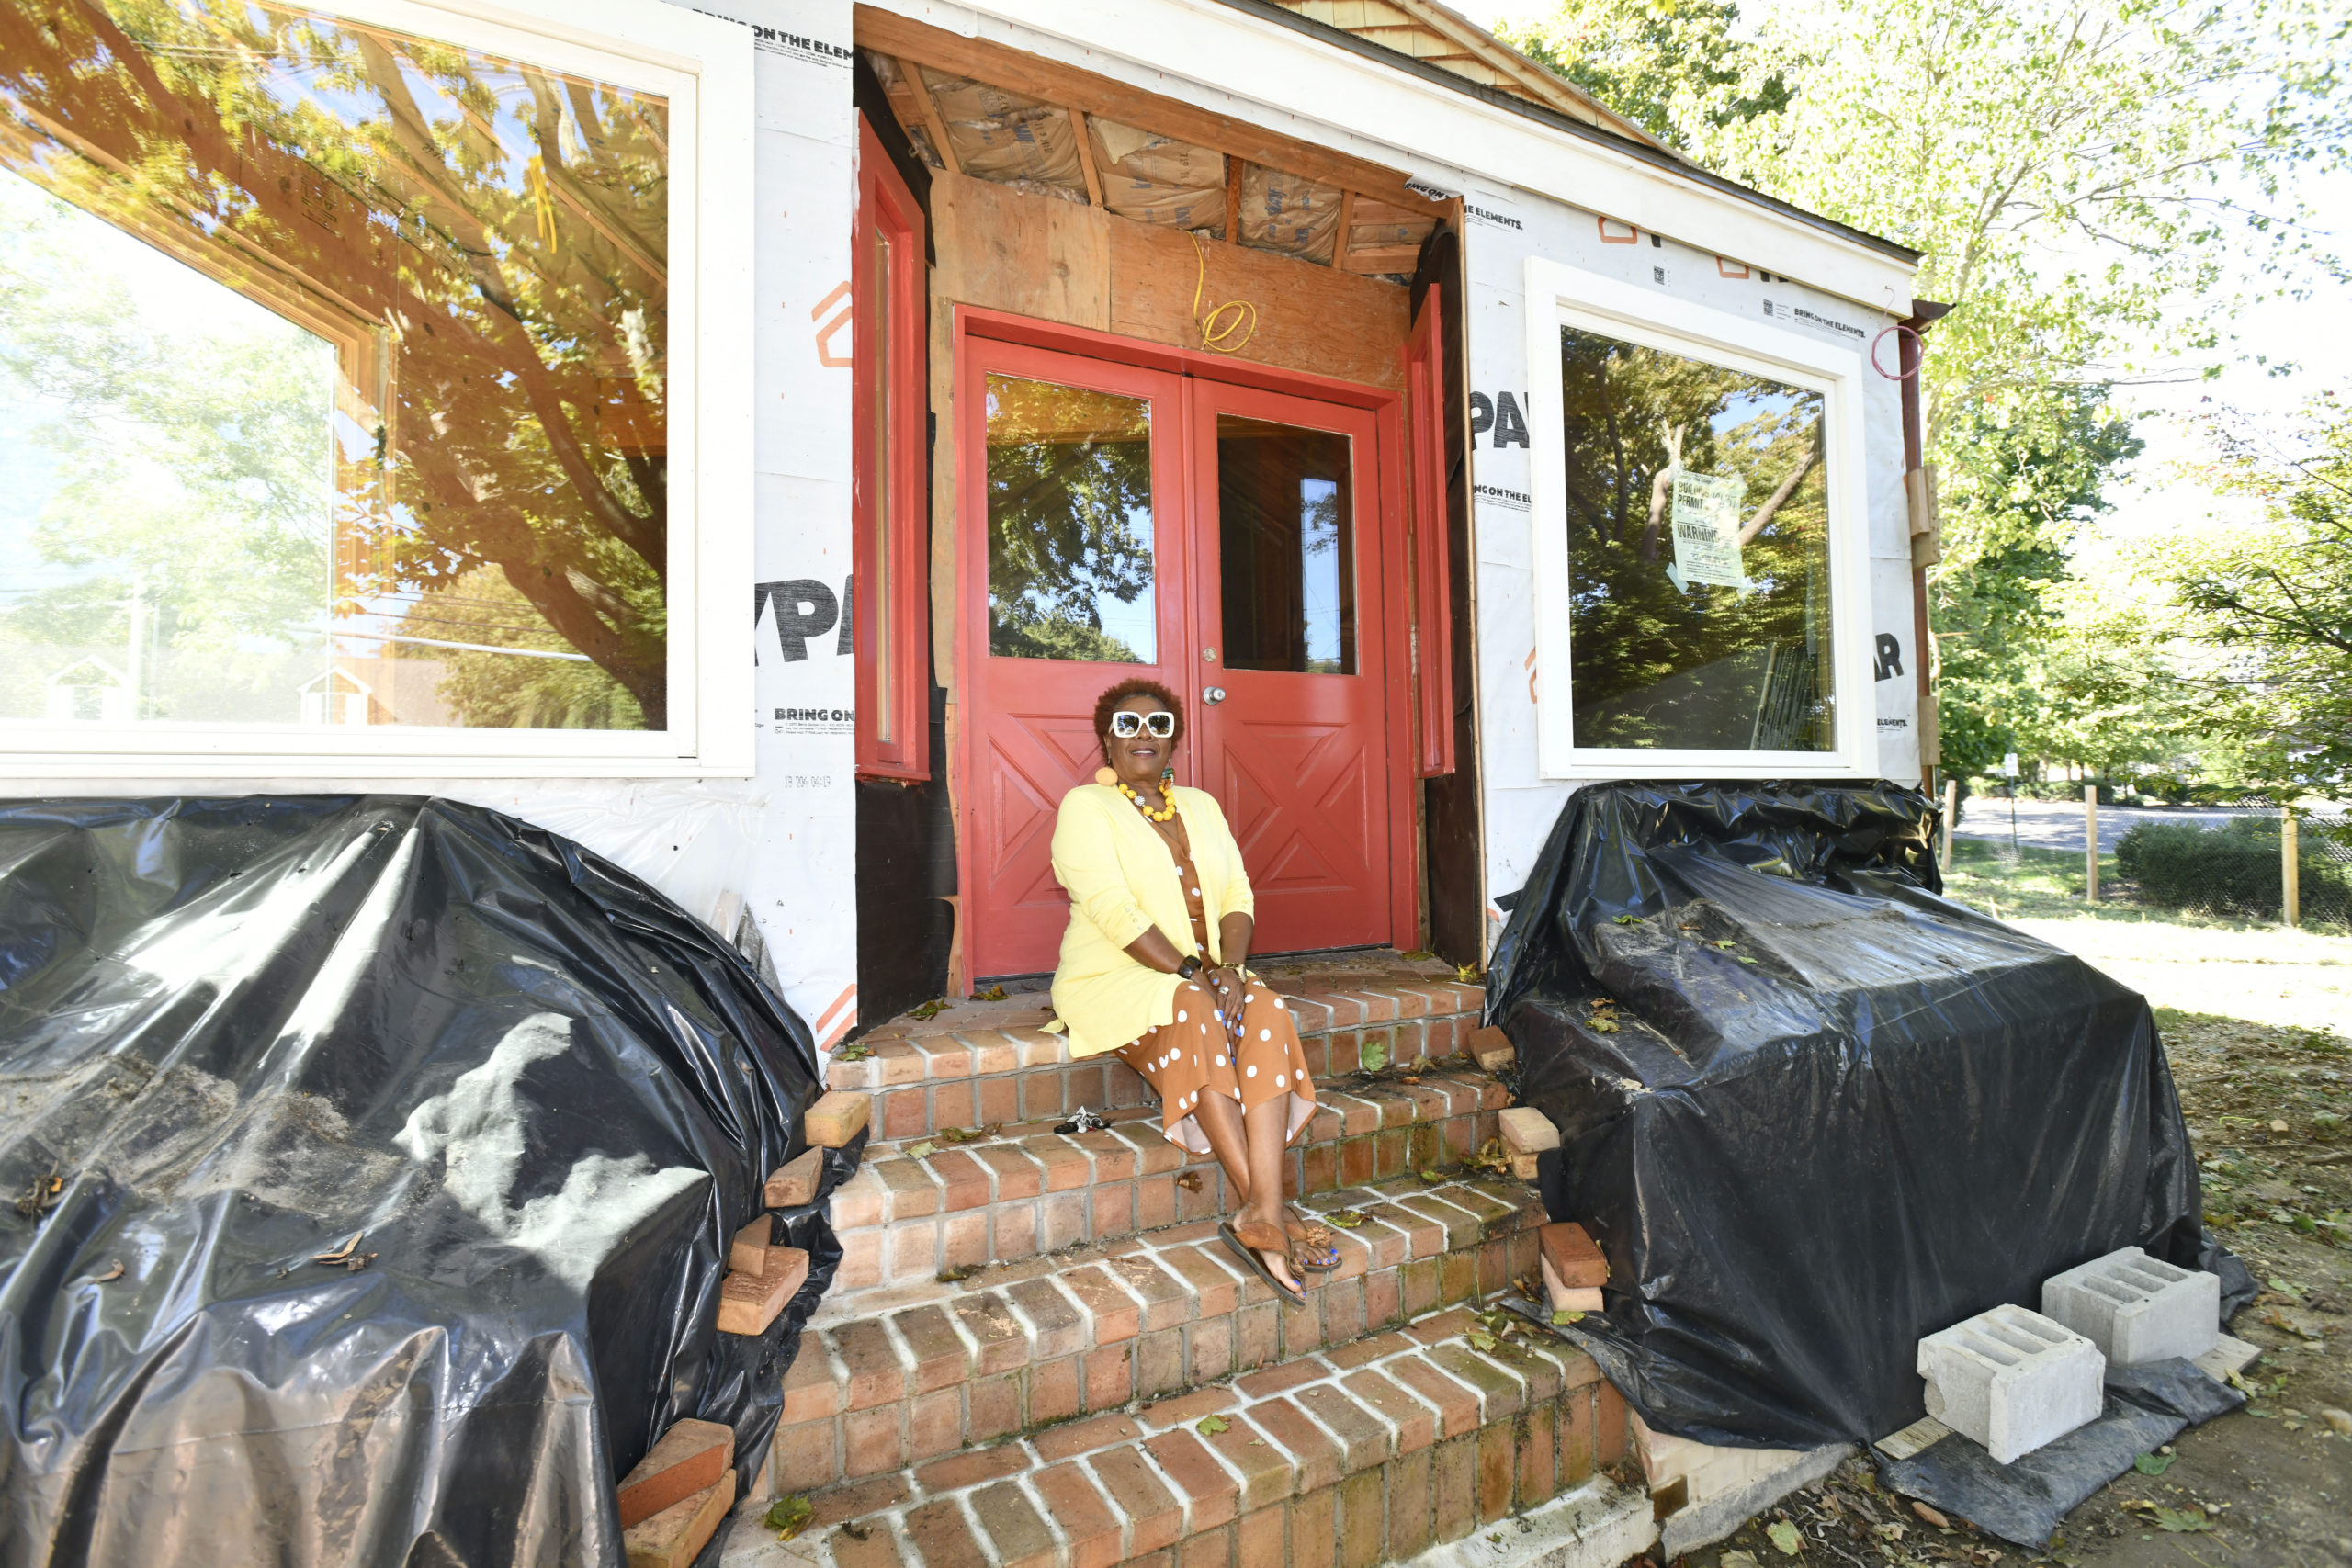 Museum Delays Test Patience October 10 -- Brenda Simmons is exhausted. That's the word she uses when she sits down to talk about the Southampton African American Museum, which was supposed to celebrate its grand opening in September on North Sea Road in Southampton Village. For months, work was being done on the building that used to house Randy's Barber Shop. But that work came to a halt, after it was discovered that the contractor, William Proefriedt of West Babylon, may have falsified documents in his bid to restore the Pyrrhus Concer House on Pond Lane. He's currently facing felony criminal charges, and was removed from both the Concer House and SAAM projects, both of which are now sitting unfinished, waiting for the next step. Mr. Proefriedt was more than halfway through the work that needed to be done to transform the old barber shop — which was designated as the first African-American historic landmark in Southampton Village in 2010 — into the museum, but the work he did was not up to par, according to both Ms. Simmons, architect Siamak Samii, and officials from LK McLean, the firm that oversees Community Preservation Fund projects. The town is now in the process of preparing to put out a bid again to complete the project, but the work likely won't be completed until the spring, at the earliest